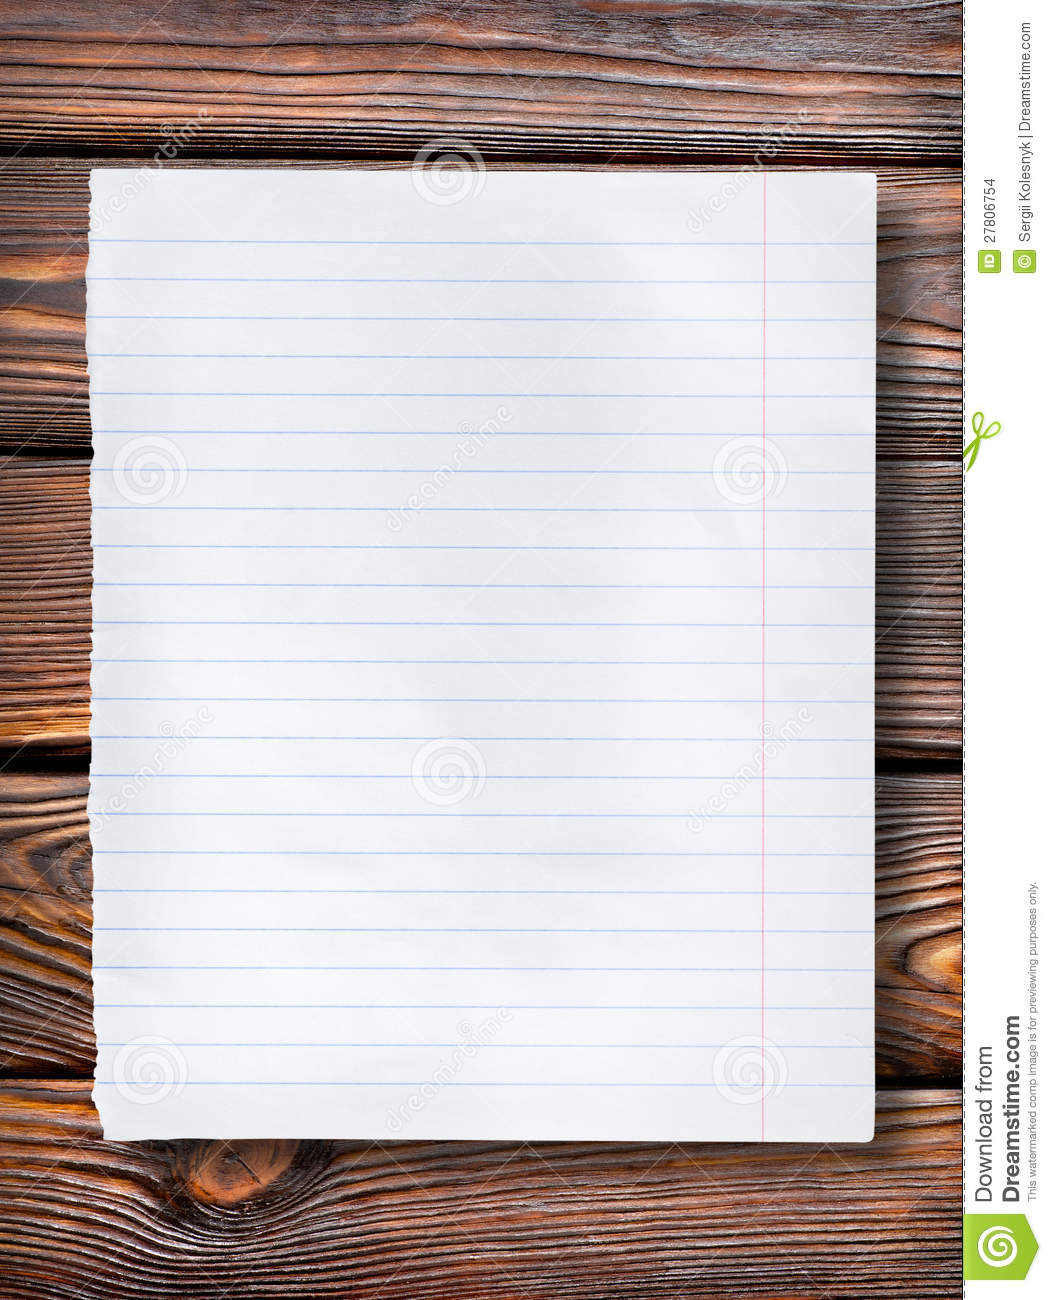 Pencil And Notepad Clipart.